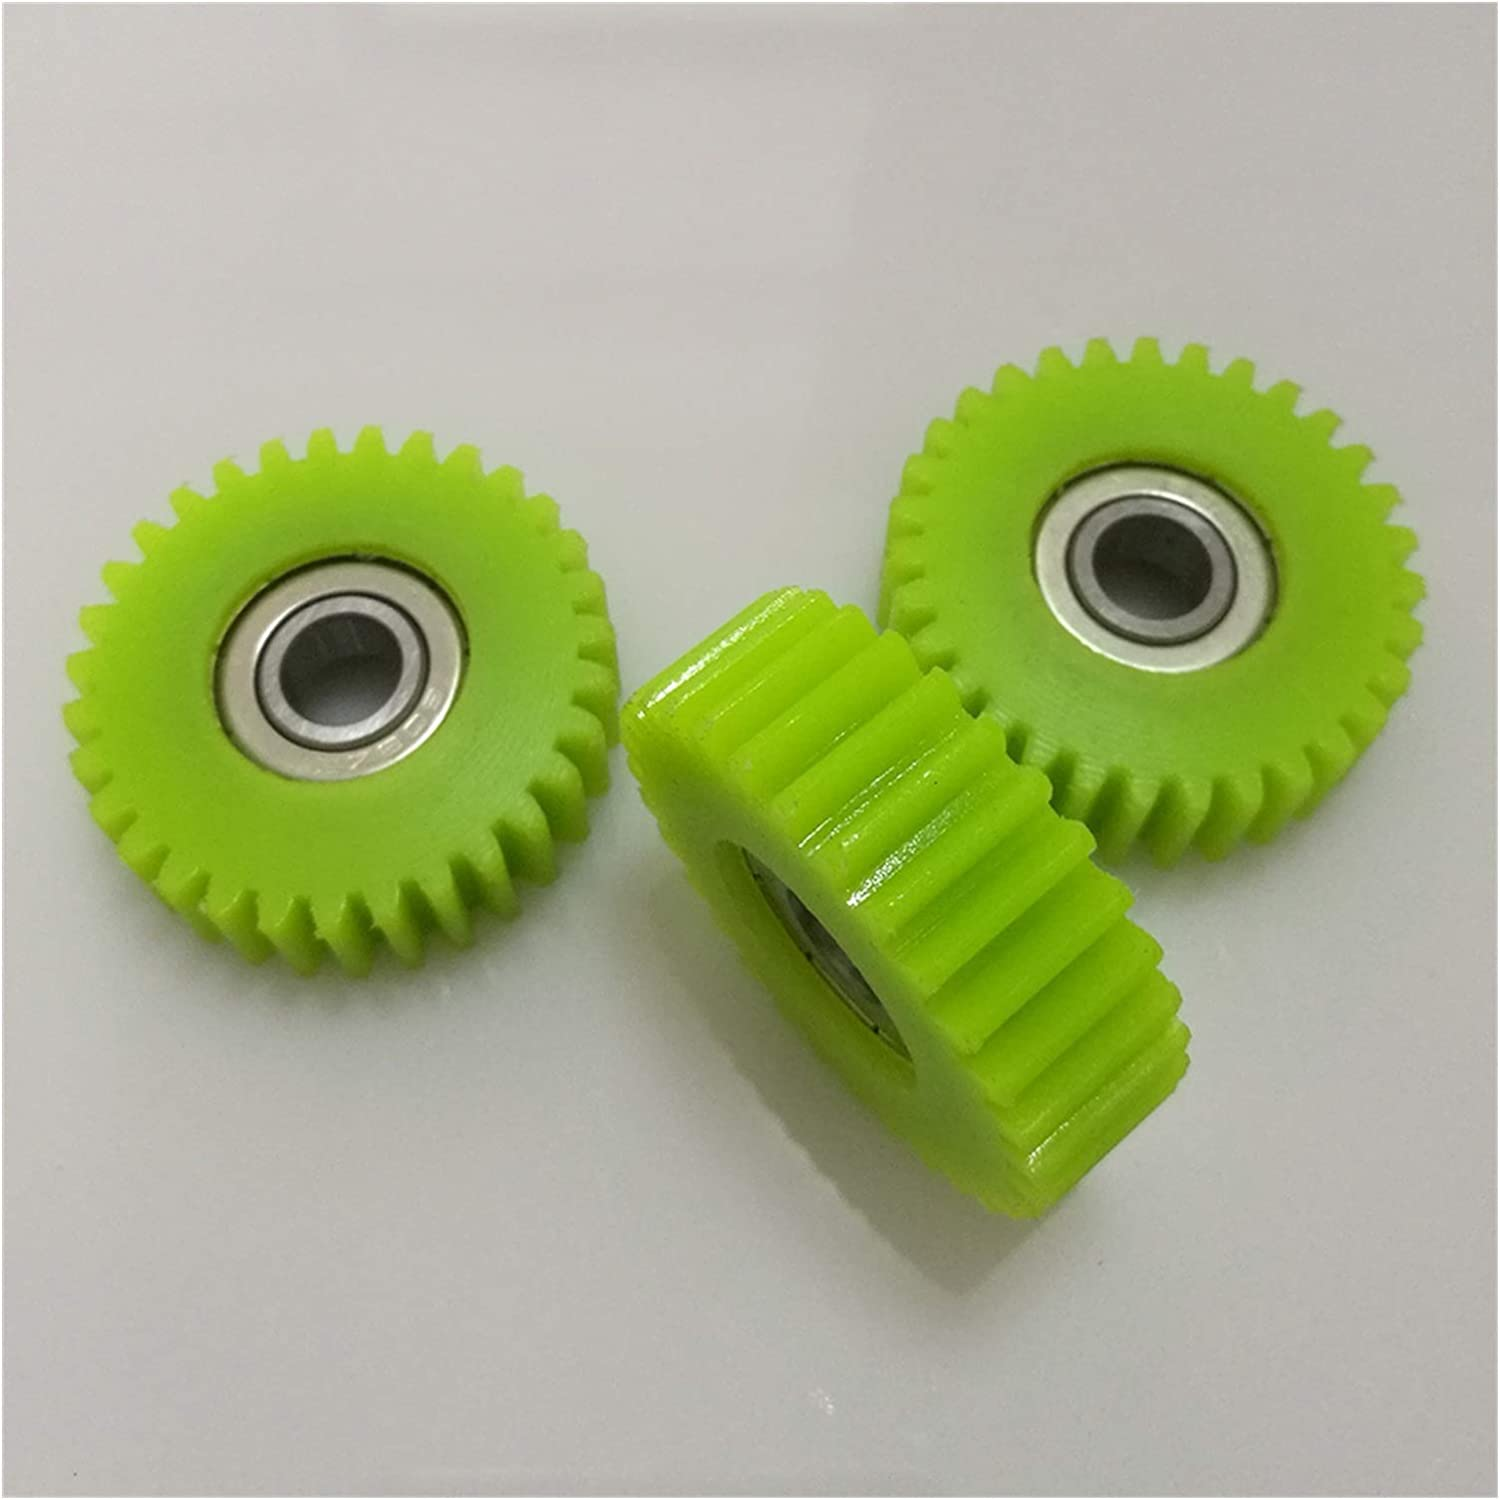 TONGCHAO Tchaogr 3pcs Nylon Plastic Gears for 38mm Discount mail order Teeth Elec Over item handling ☆ 31